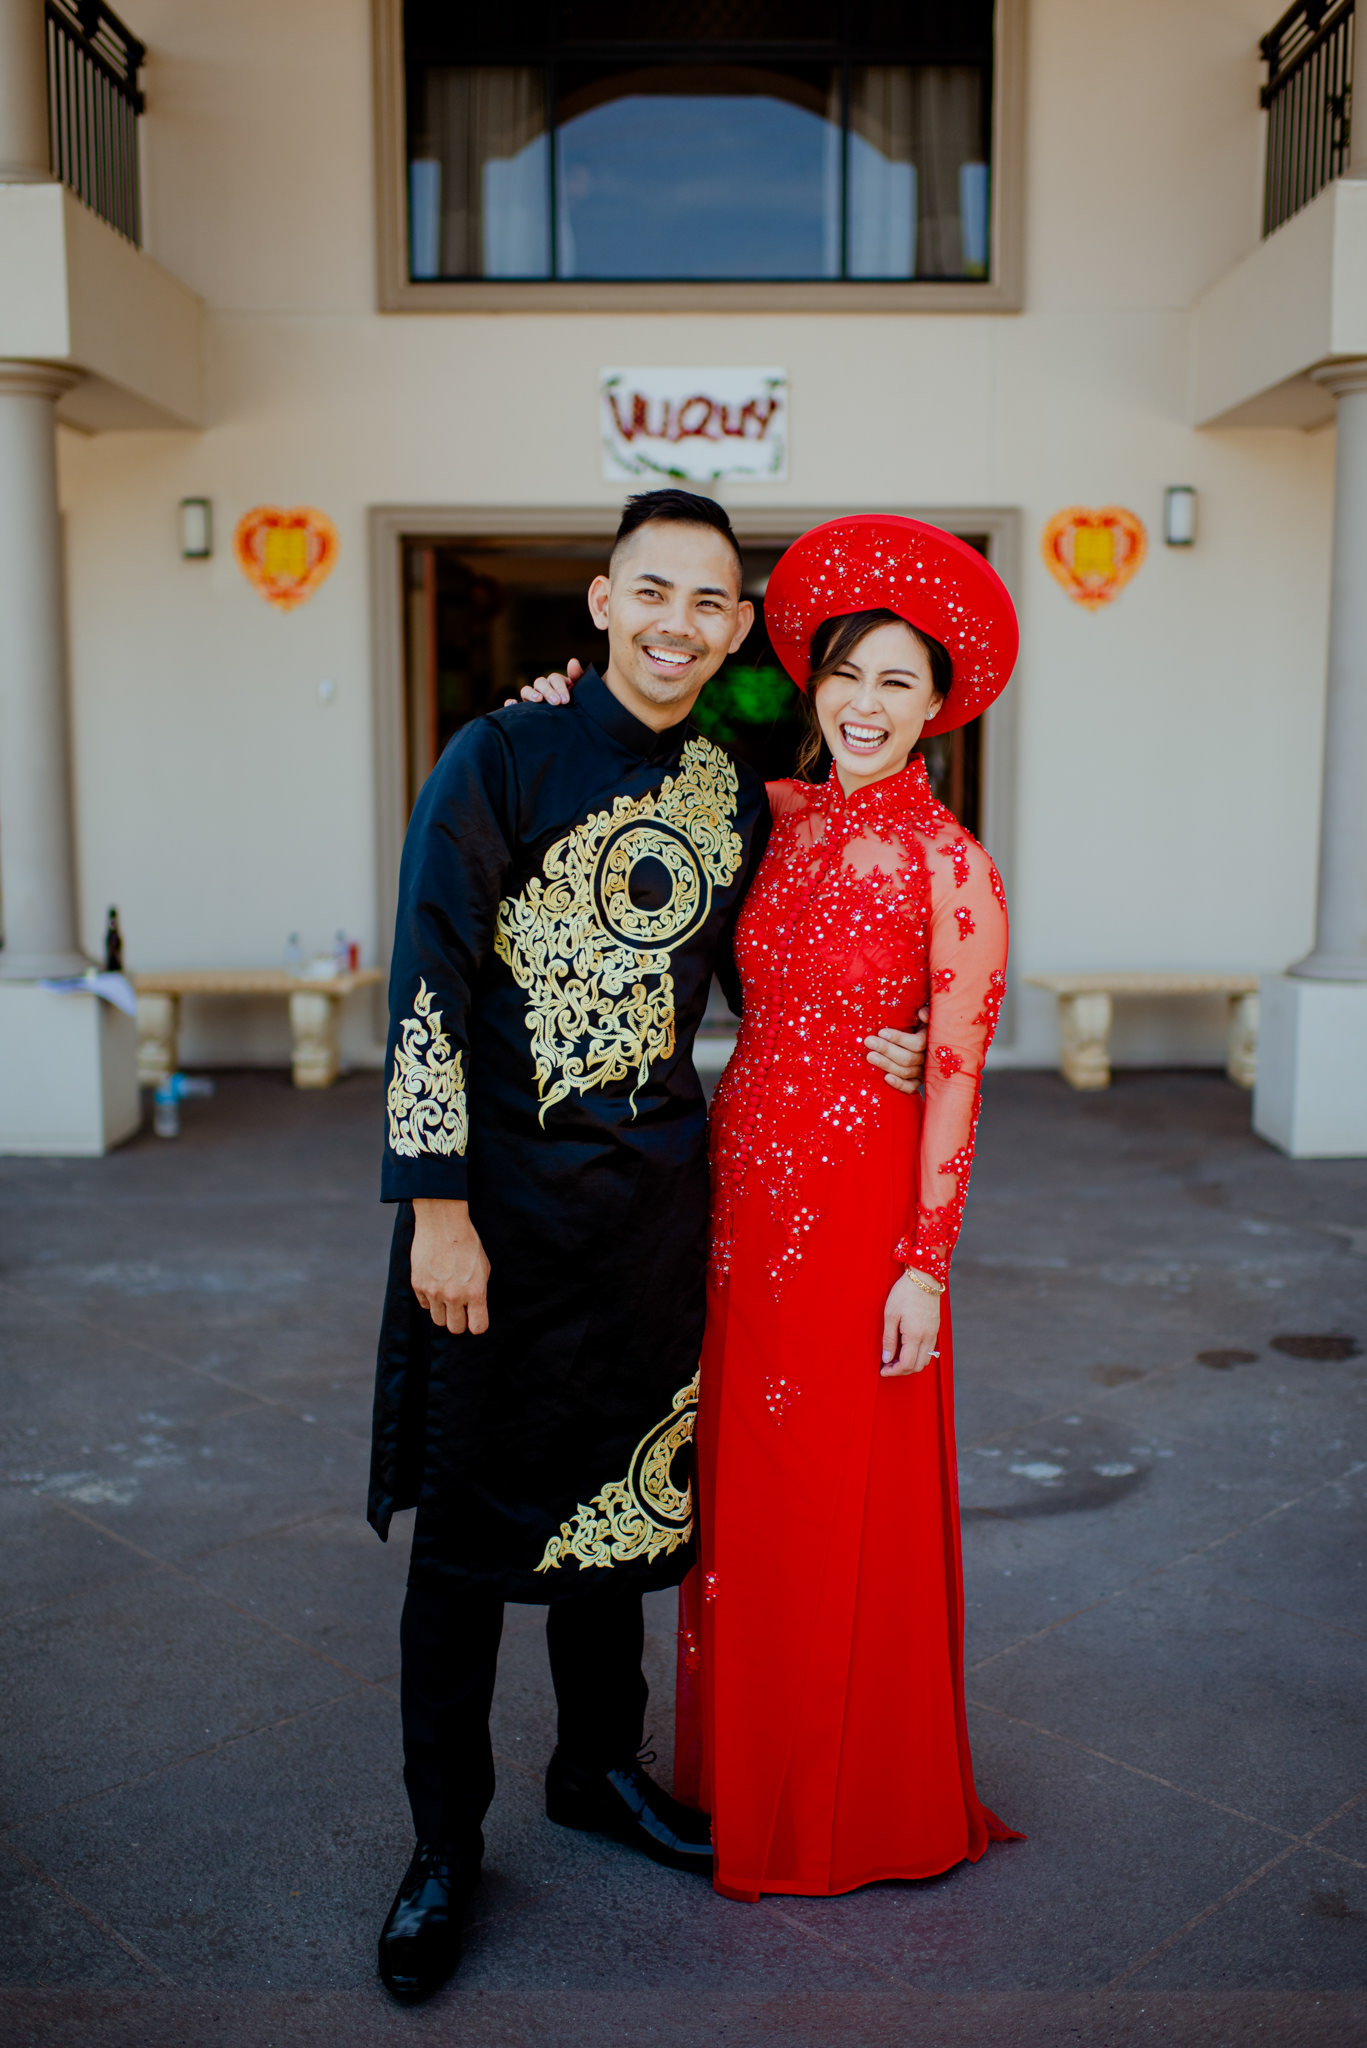 A couple wearing traditional Vietnamese clothing laugh and hug